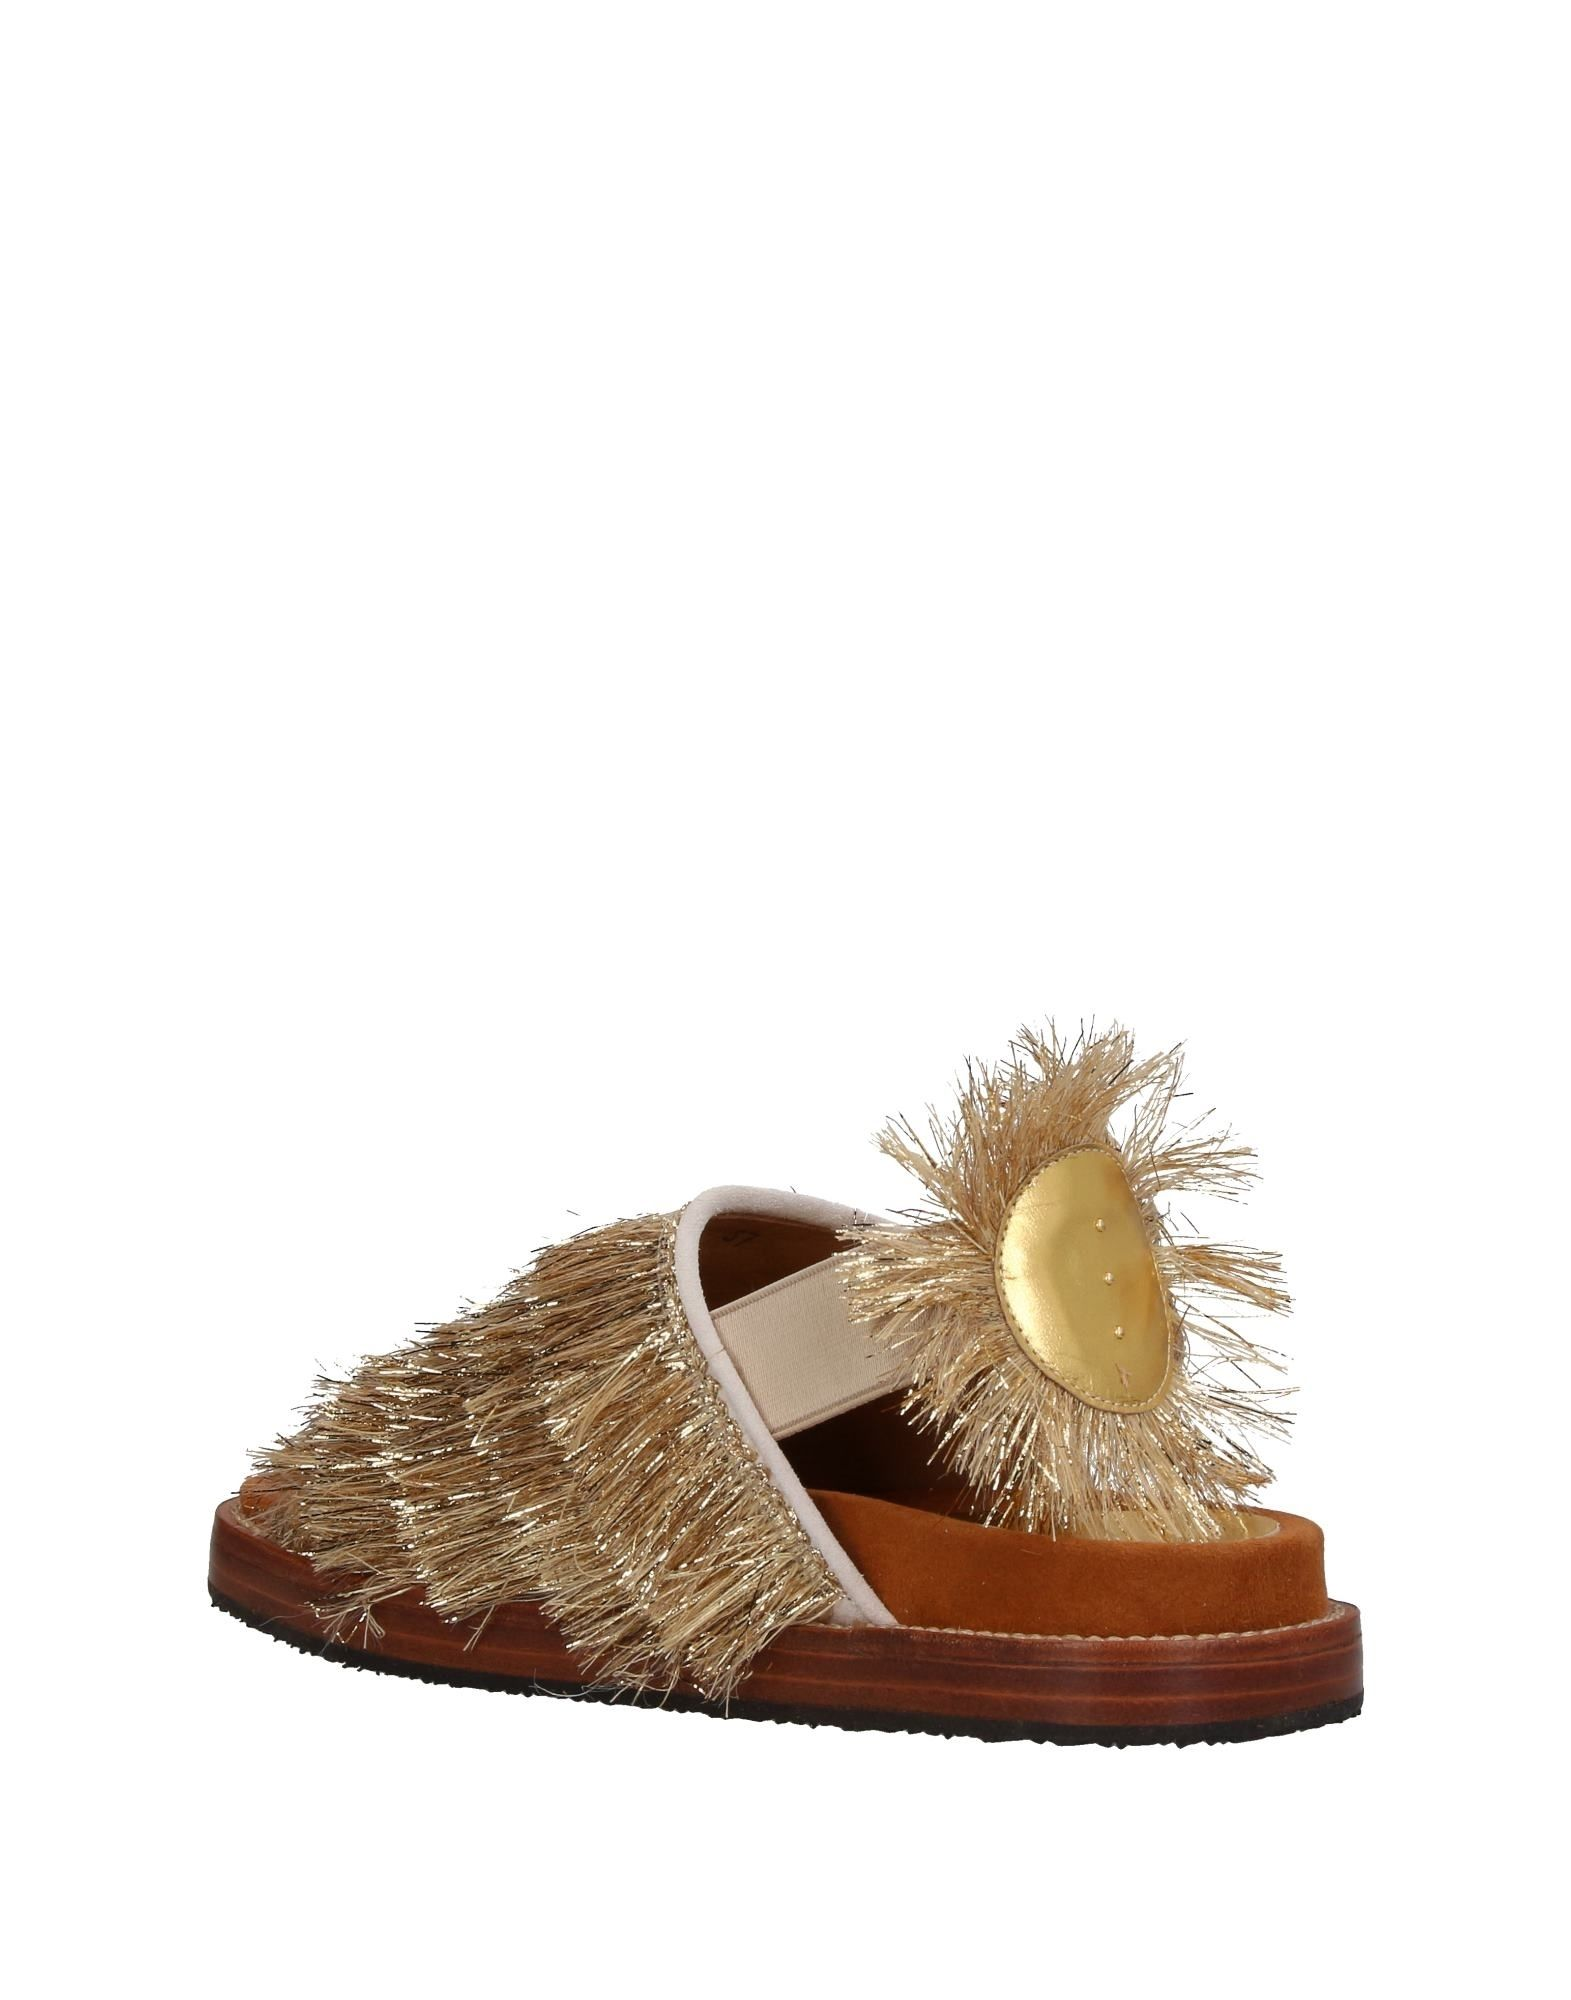 ... Sandales Lf Shoes Femme - Sandales Lf Shoes sur ...